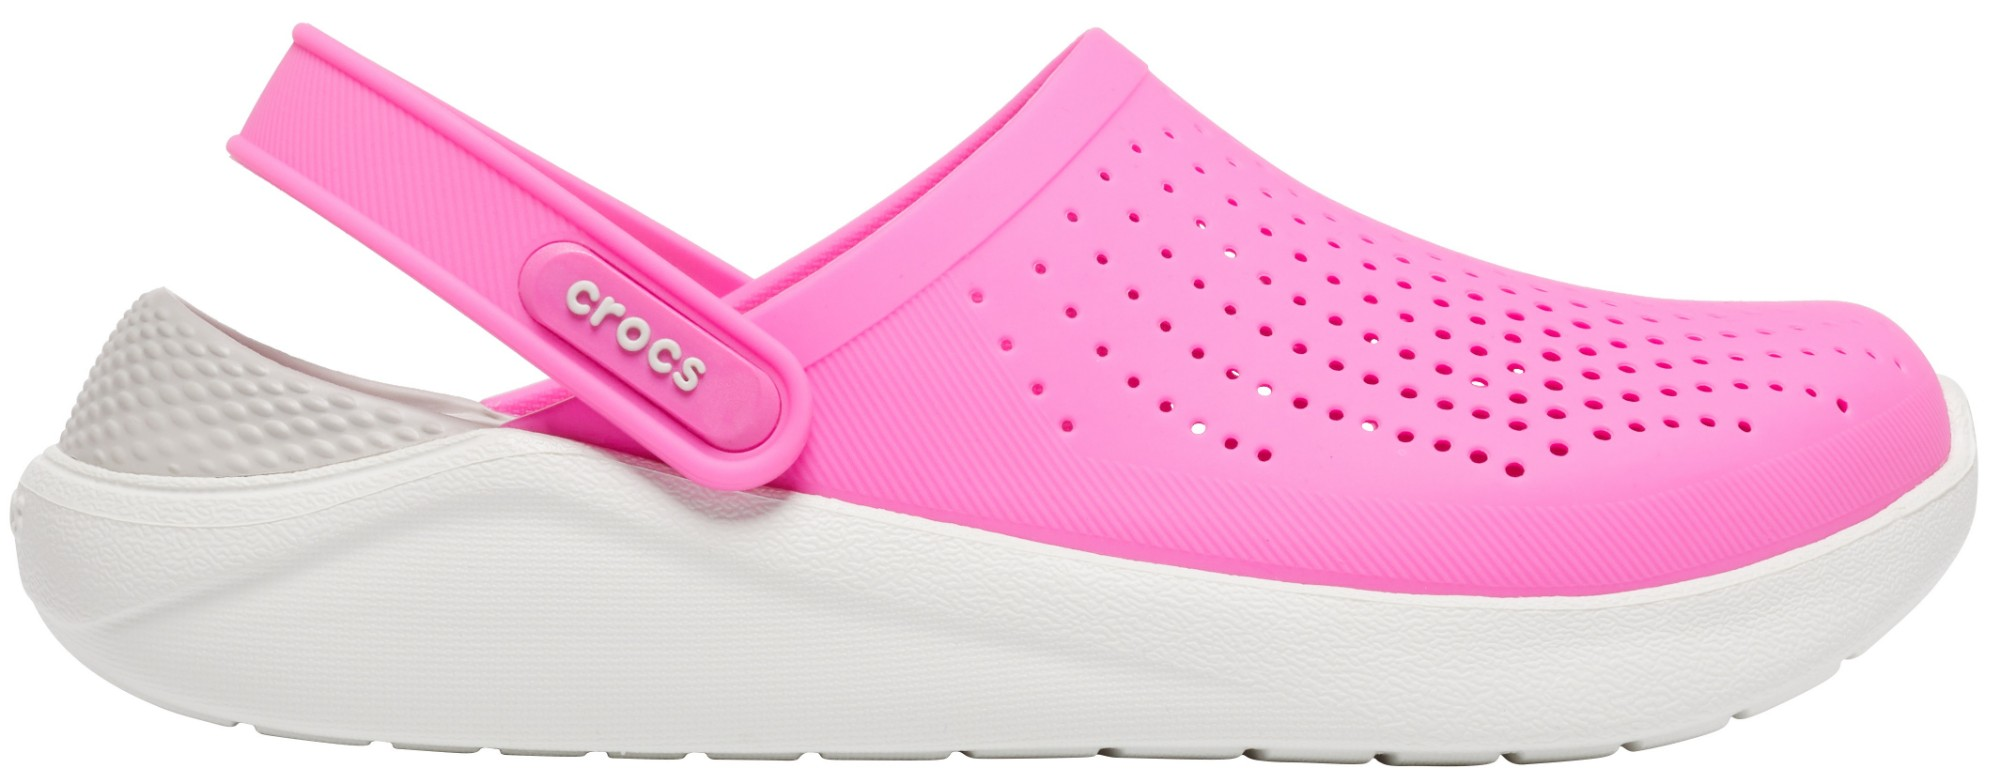 Crocs™ LiteRide Clog Electric Pink/Almost White 36,5